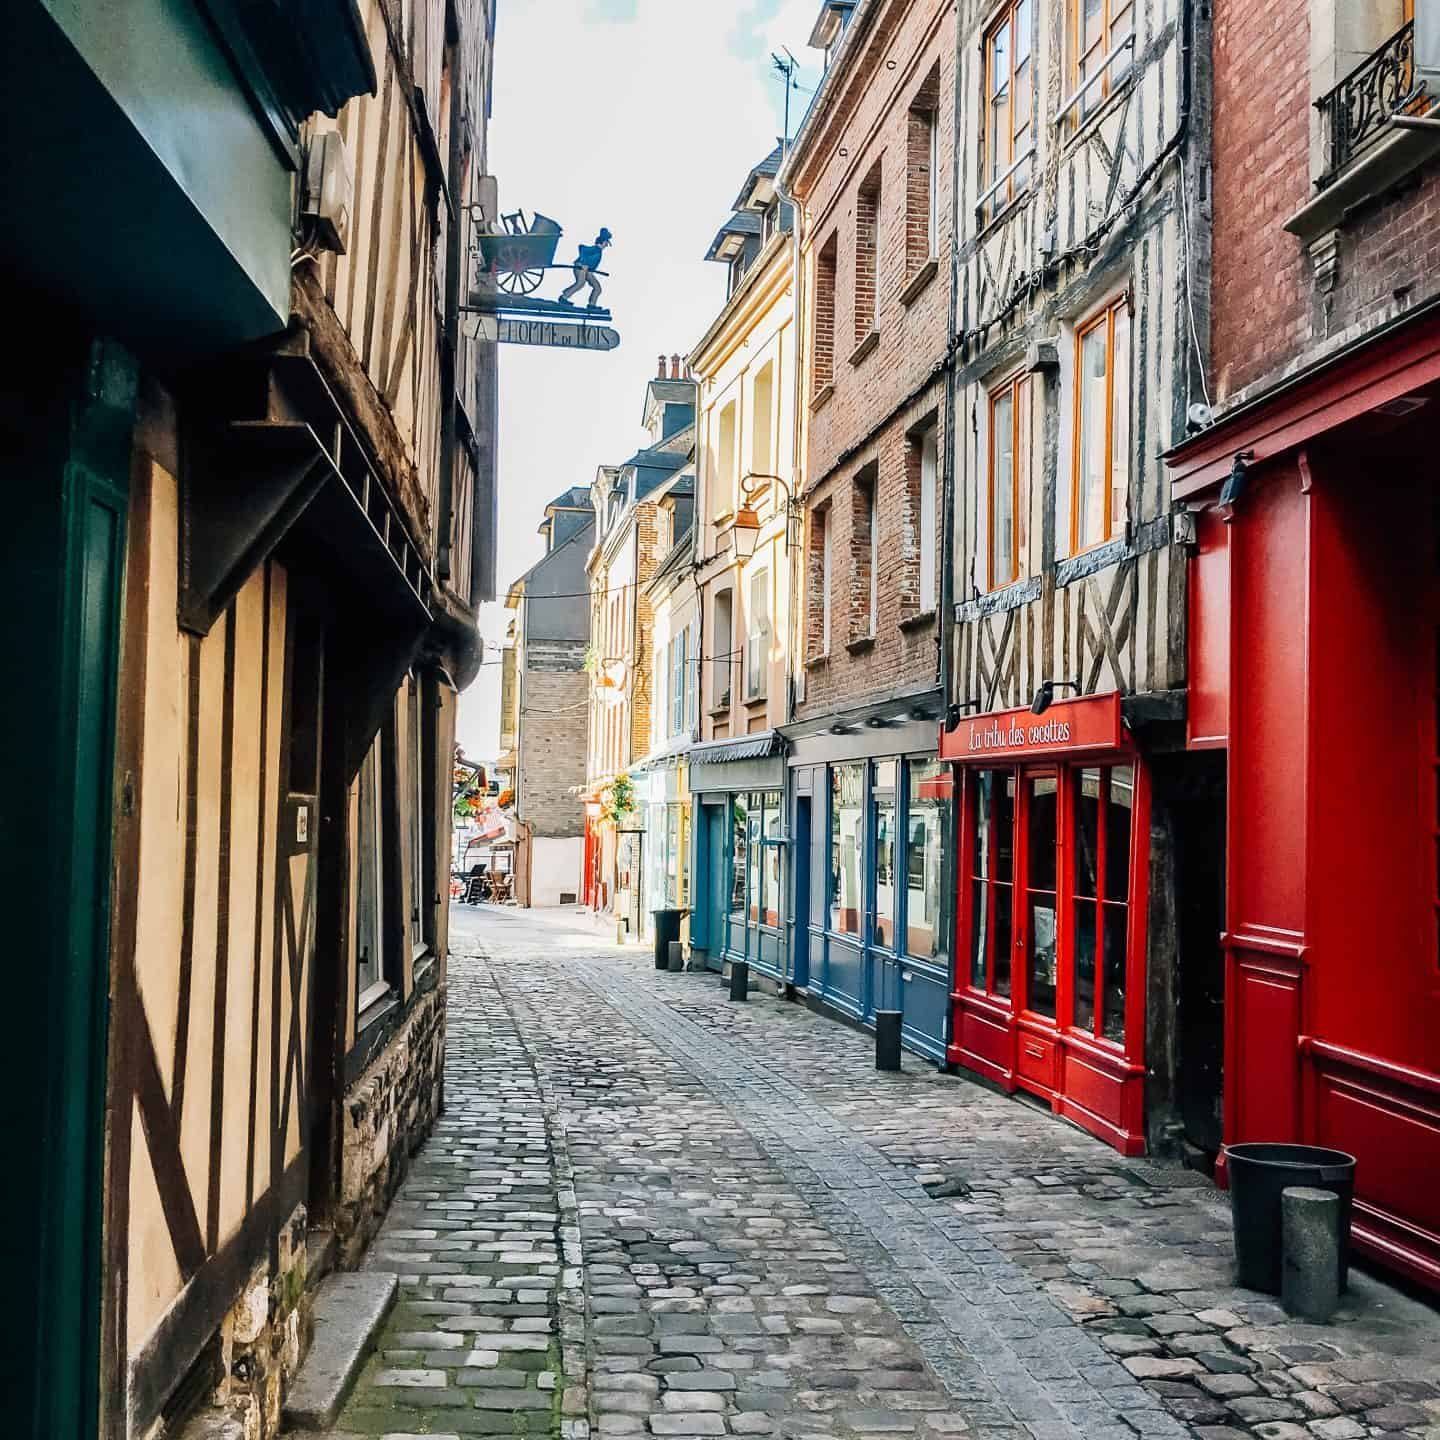 streets of honfleur france - normandy itinerary